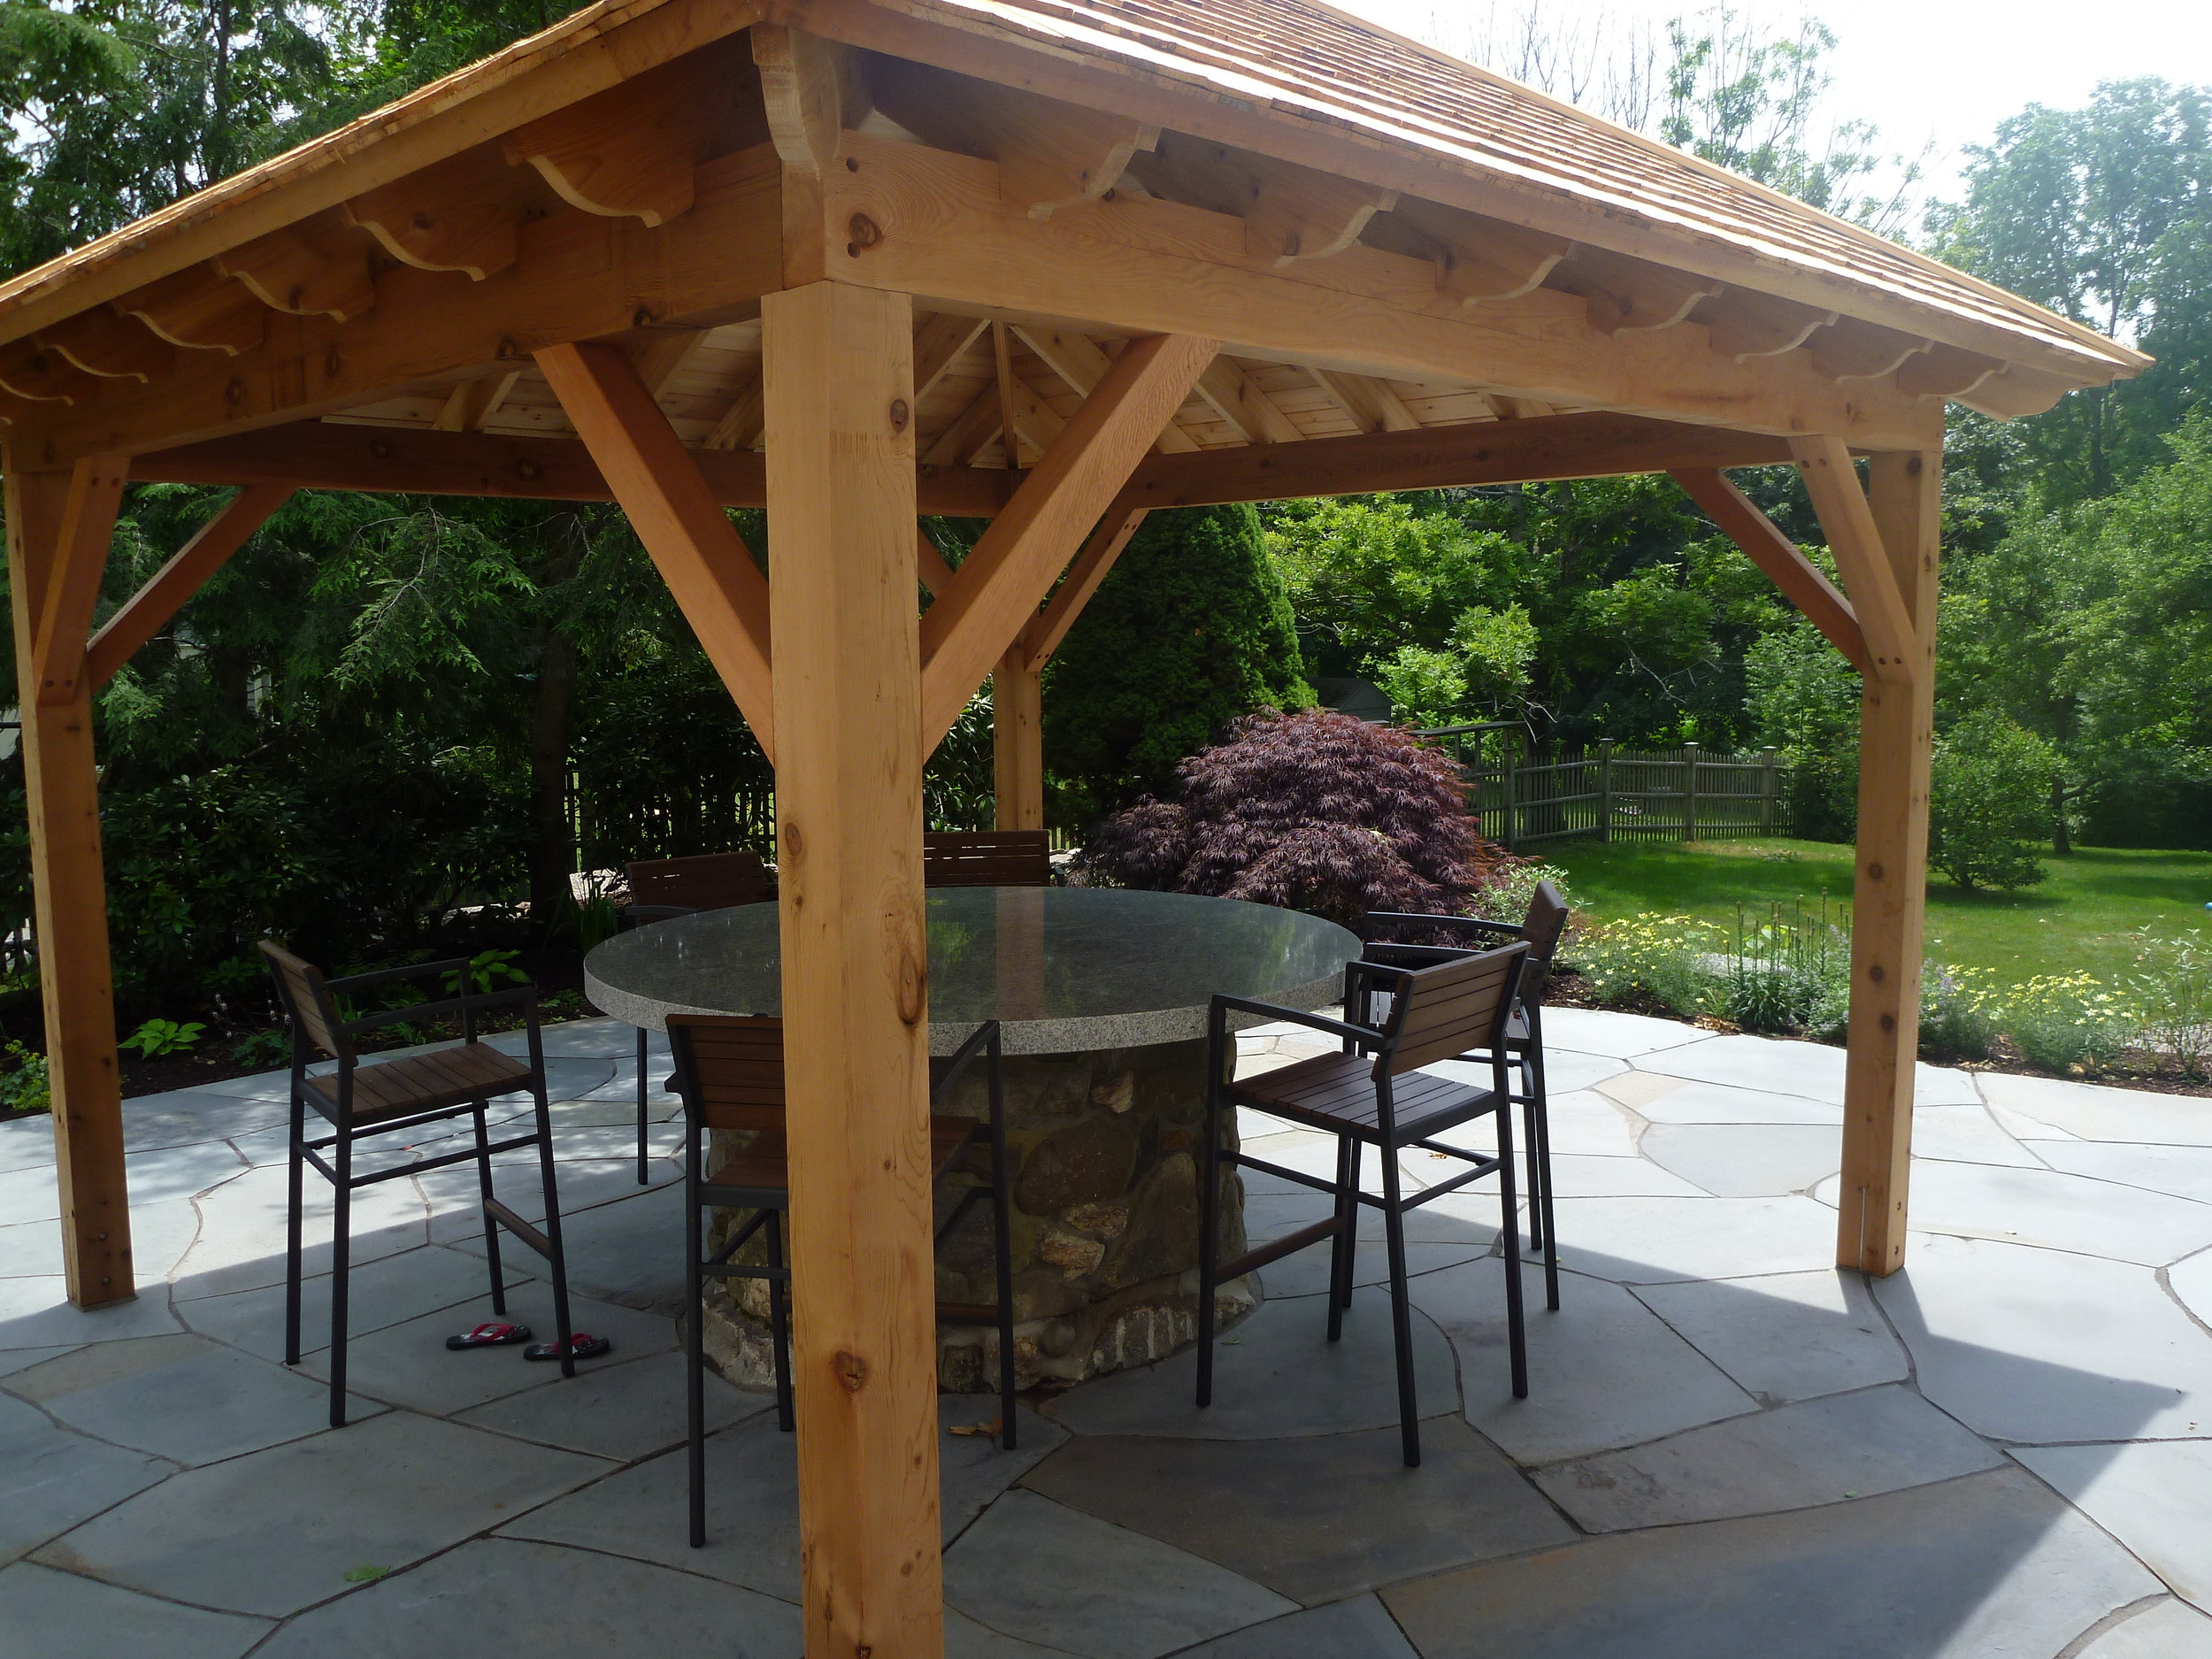 Cedar Pergola with Woodbury Granite Table Top on Well.jpg